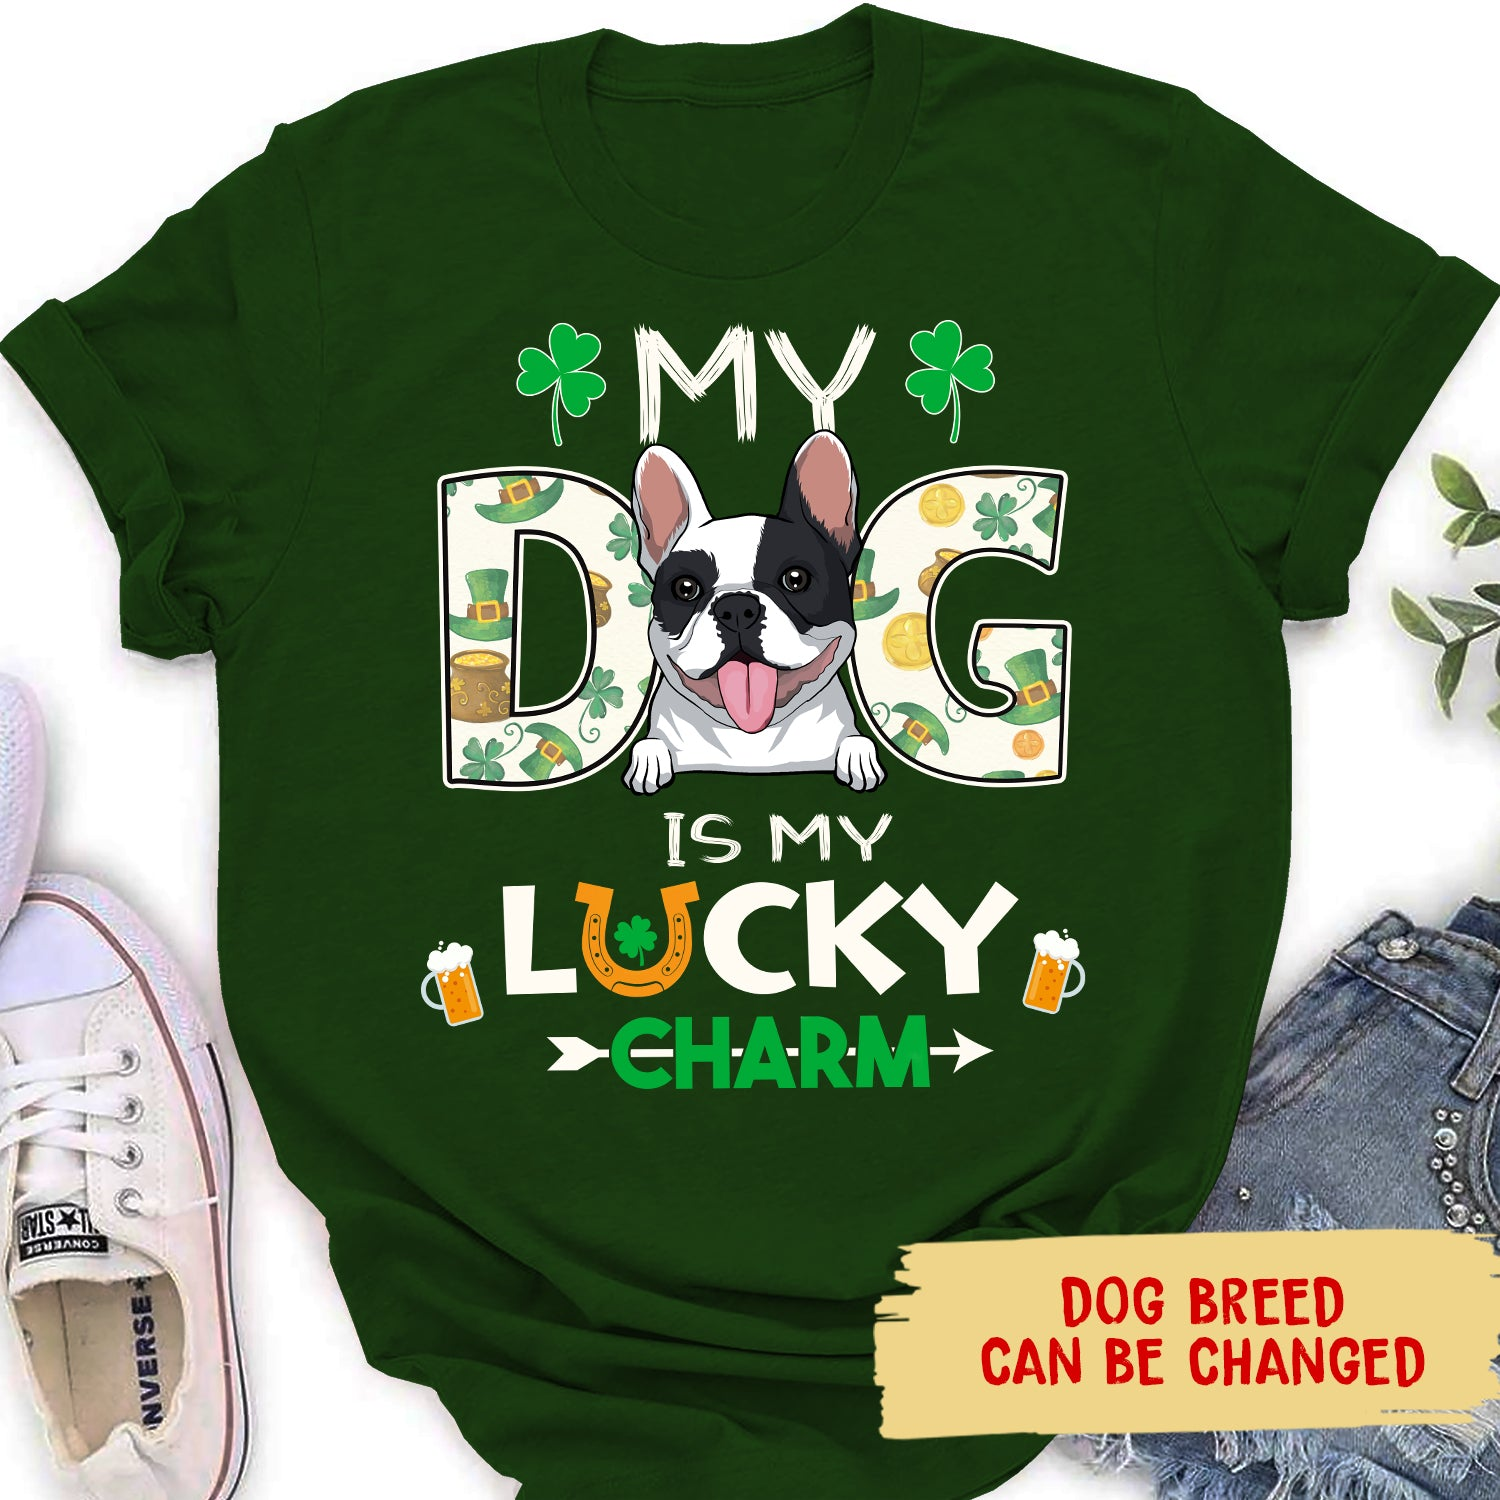 My Dog Is My Lucky Charm - Personalized Custom Women T-shirt